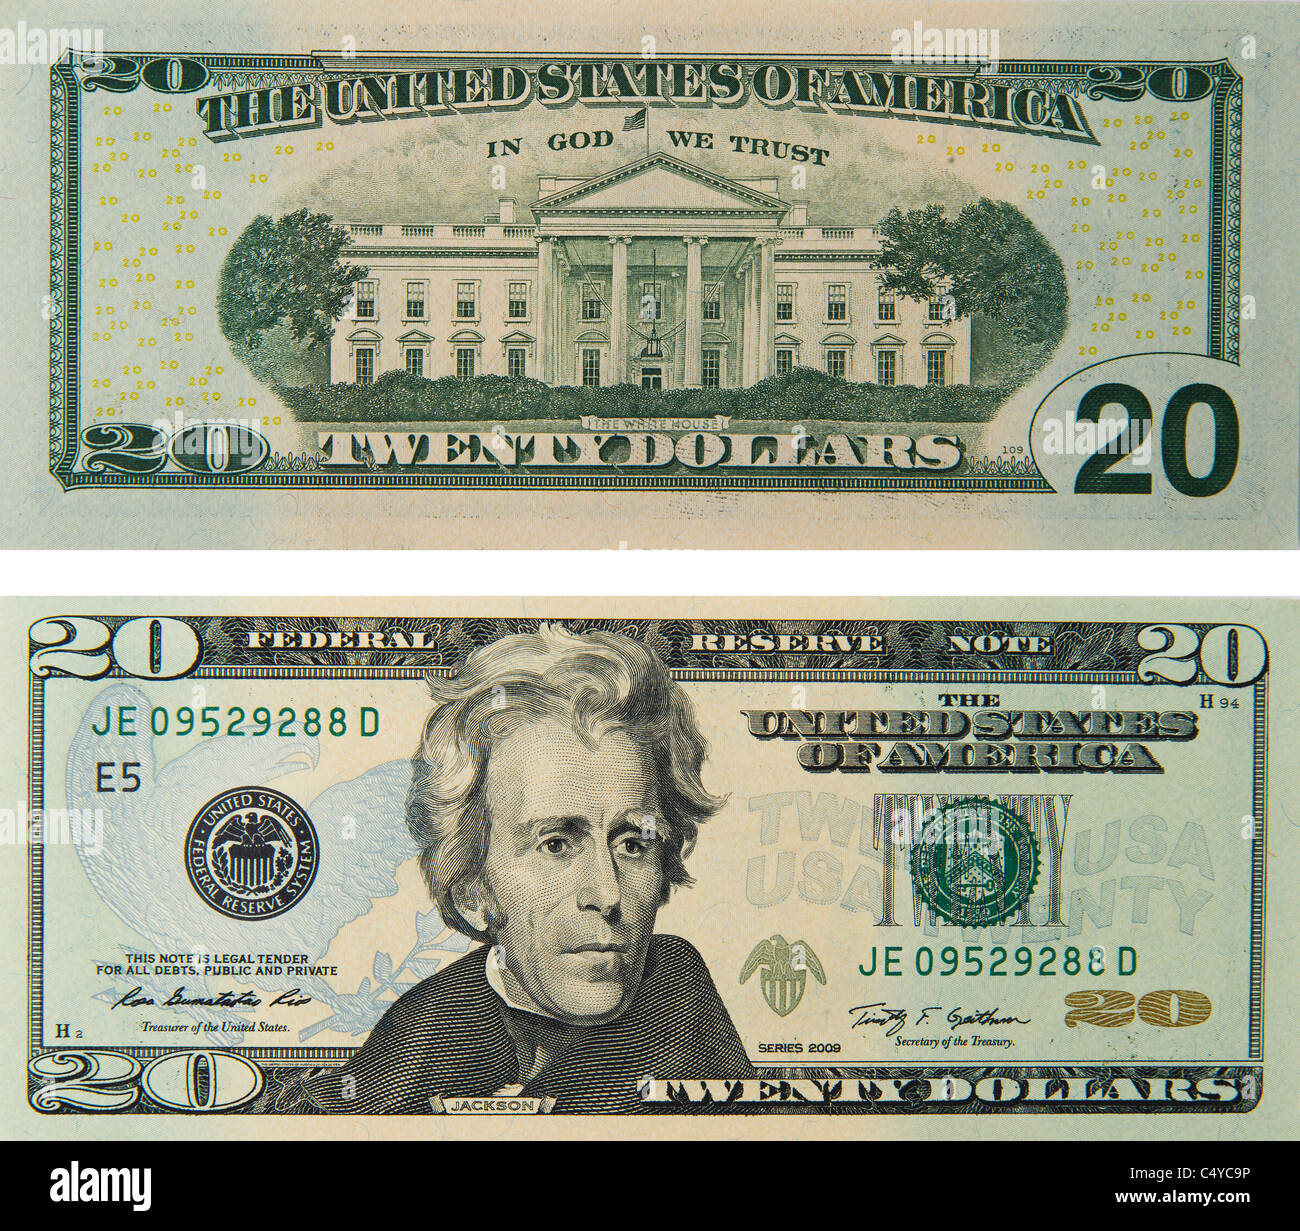 20 twenty dollar bill note bill's note's dollars - Stock Image